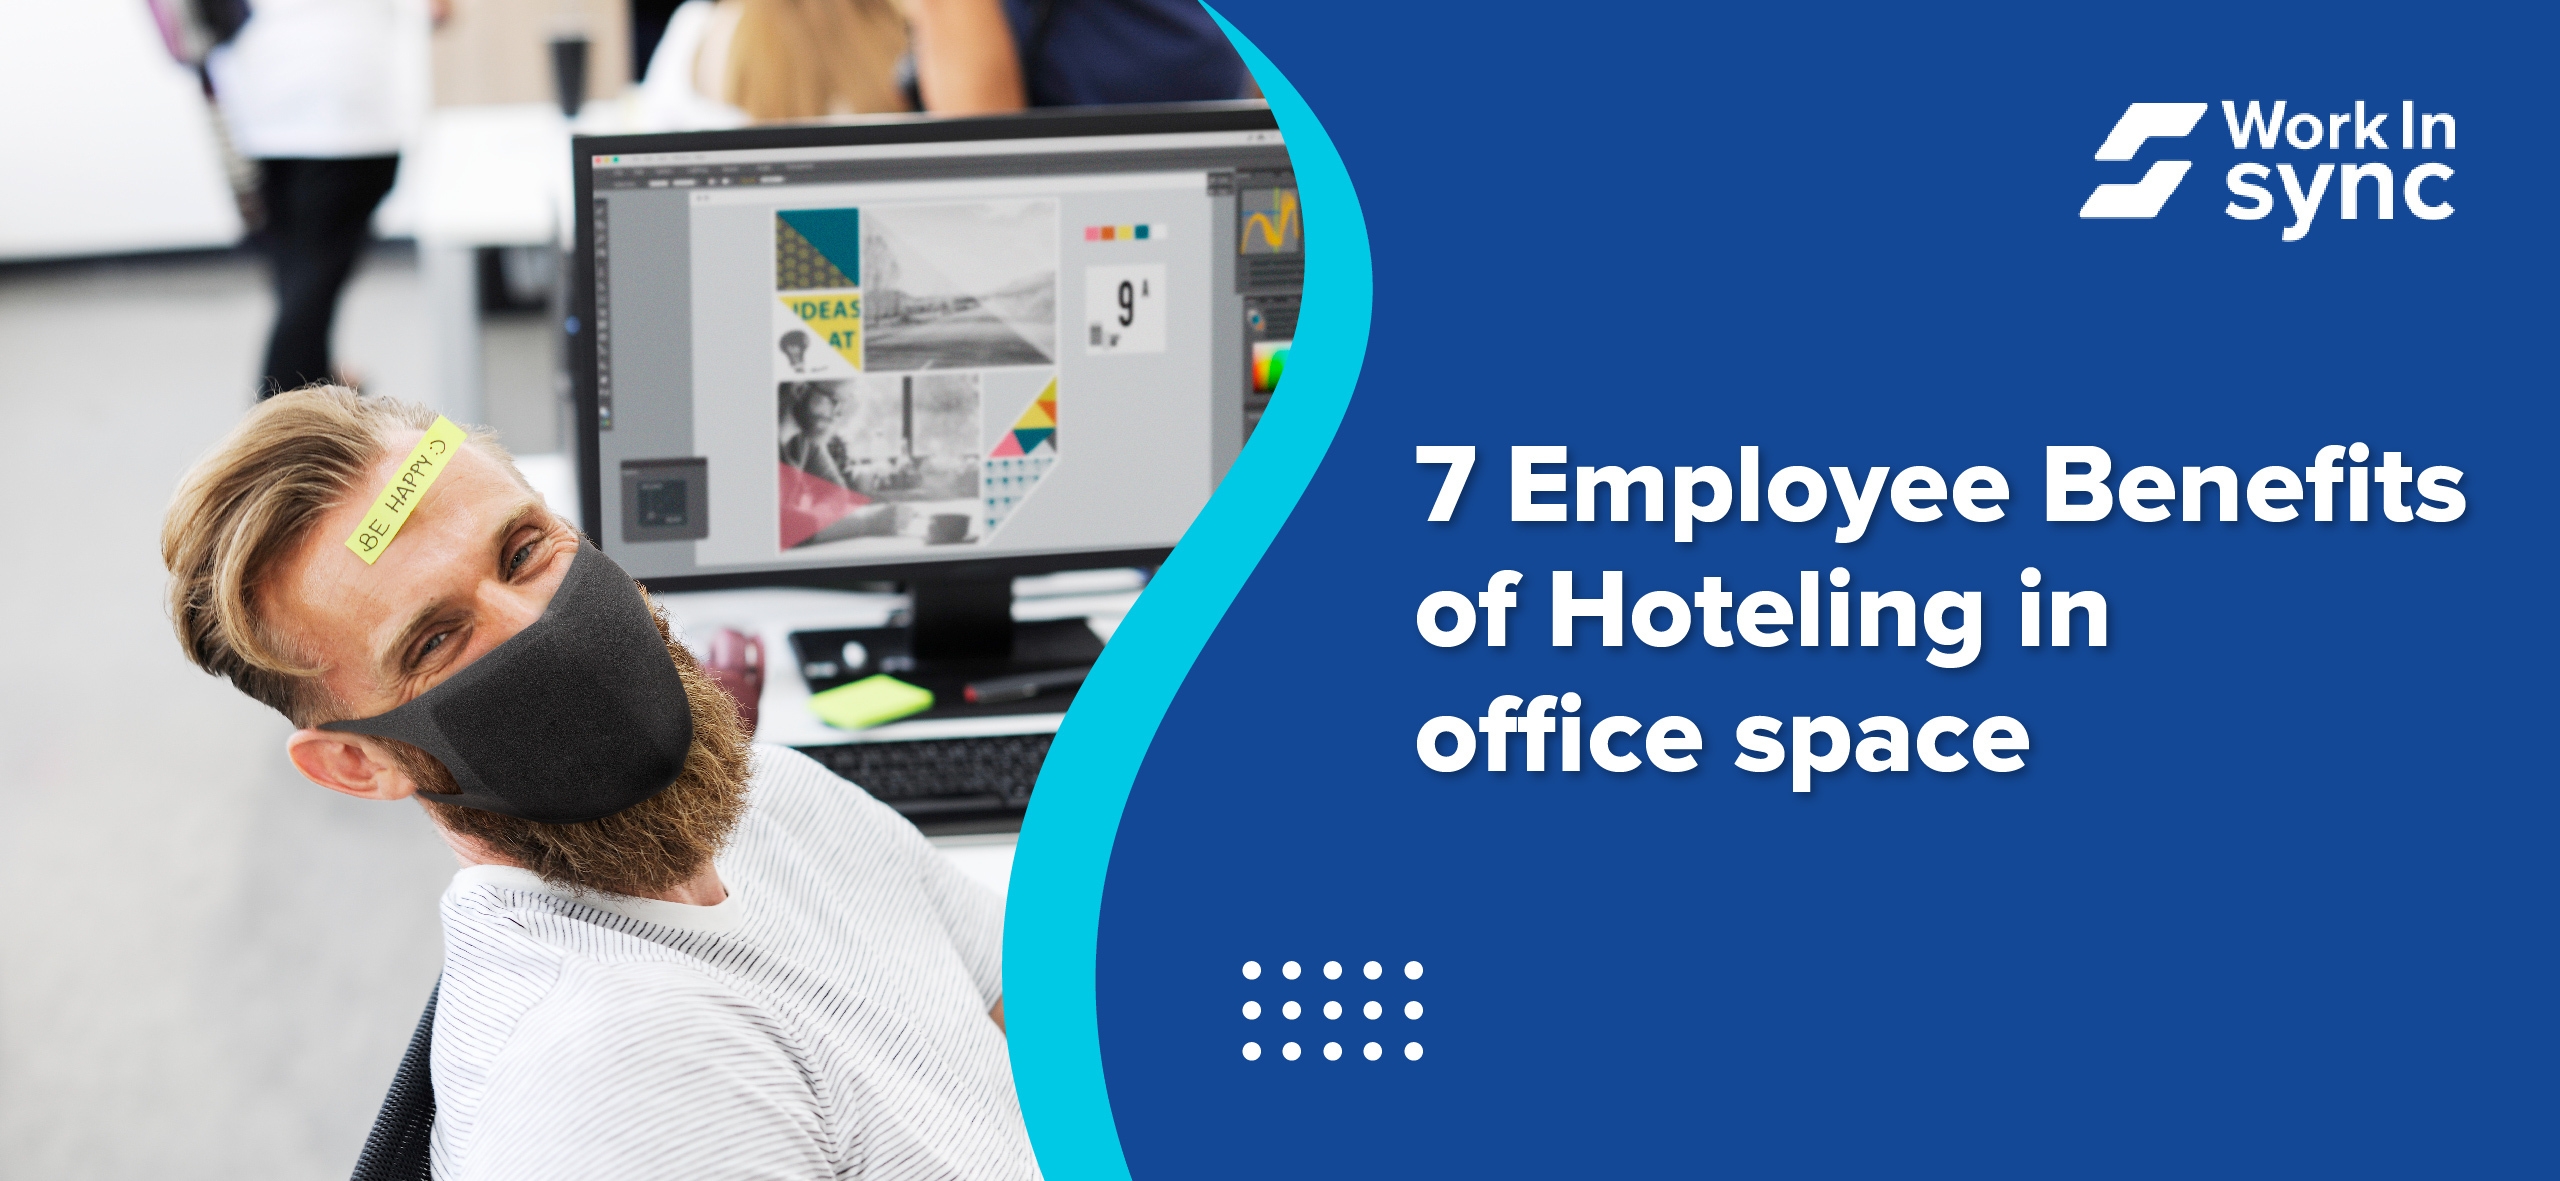 7 Employee Benefits of Hoteling in Office Space